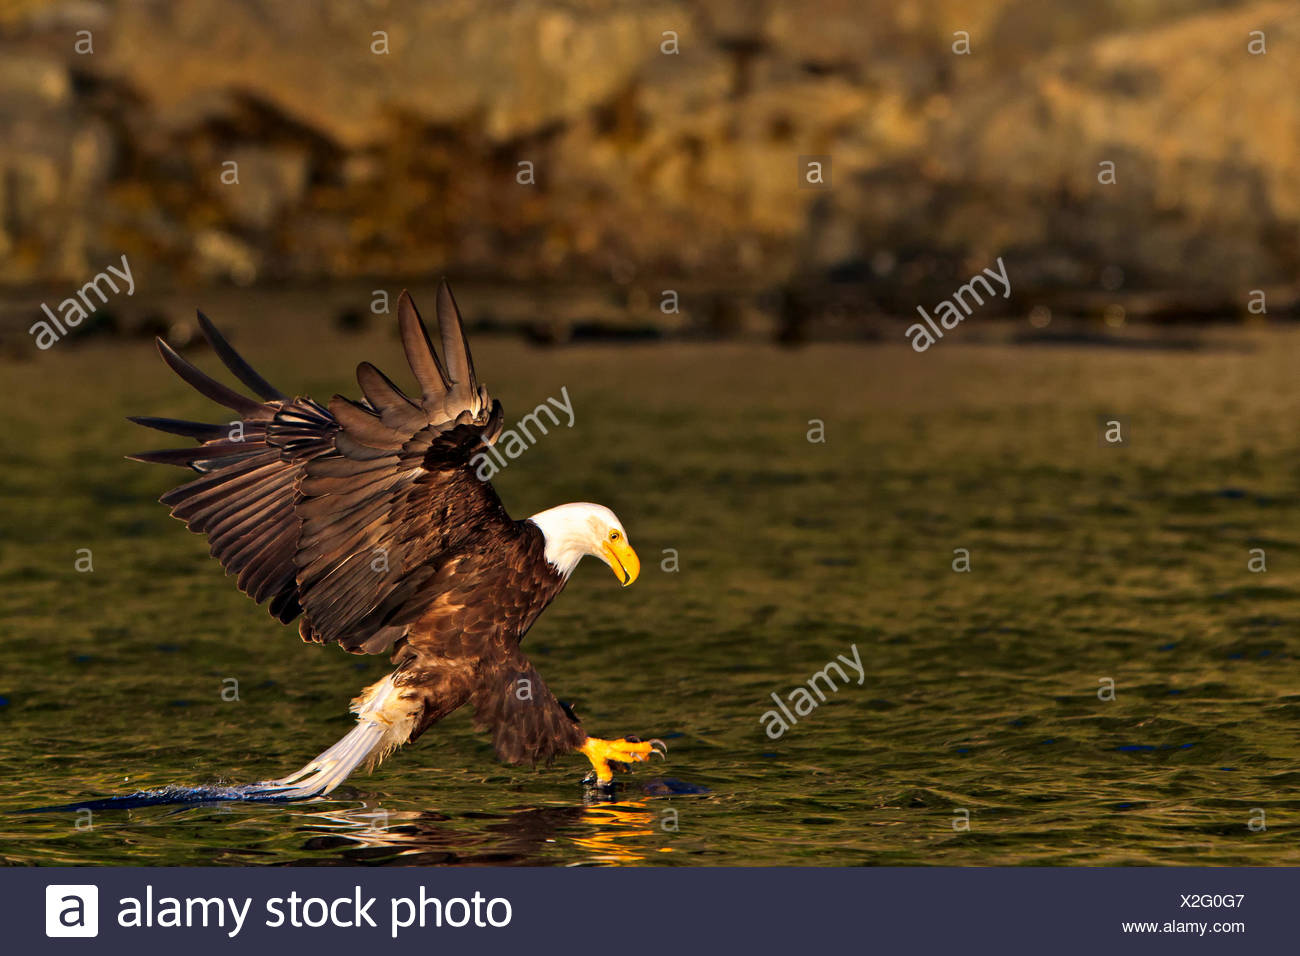 Bald eagle hunting and catching a fish, British Columbia, Canada. - Stock Image